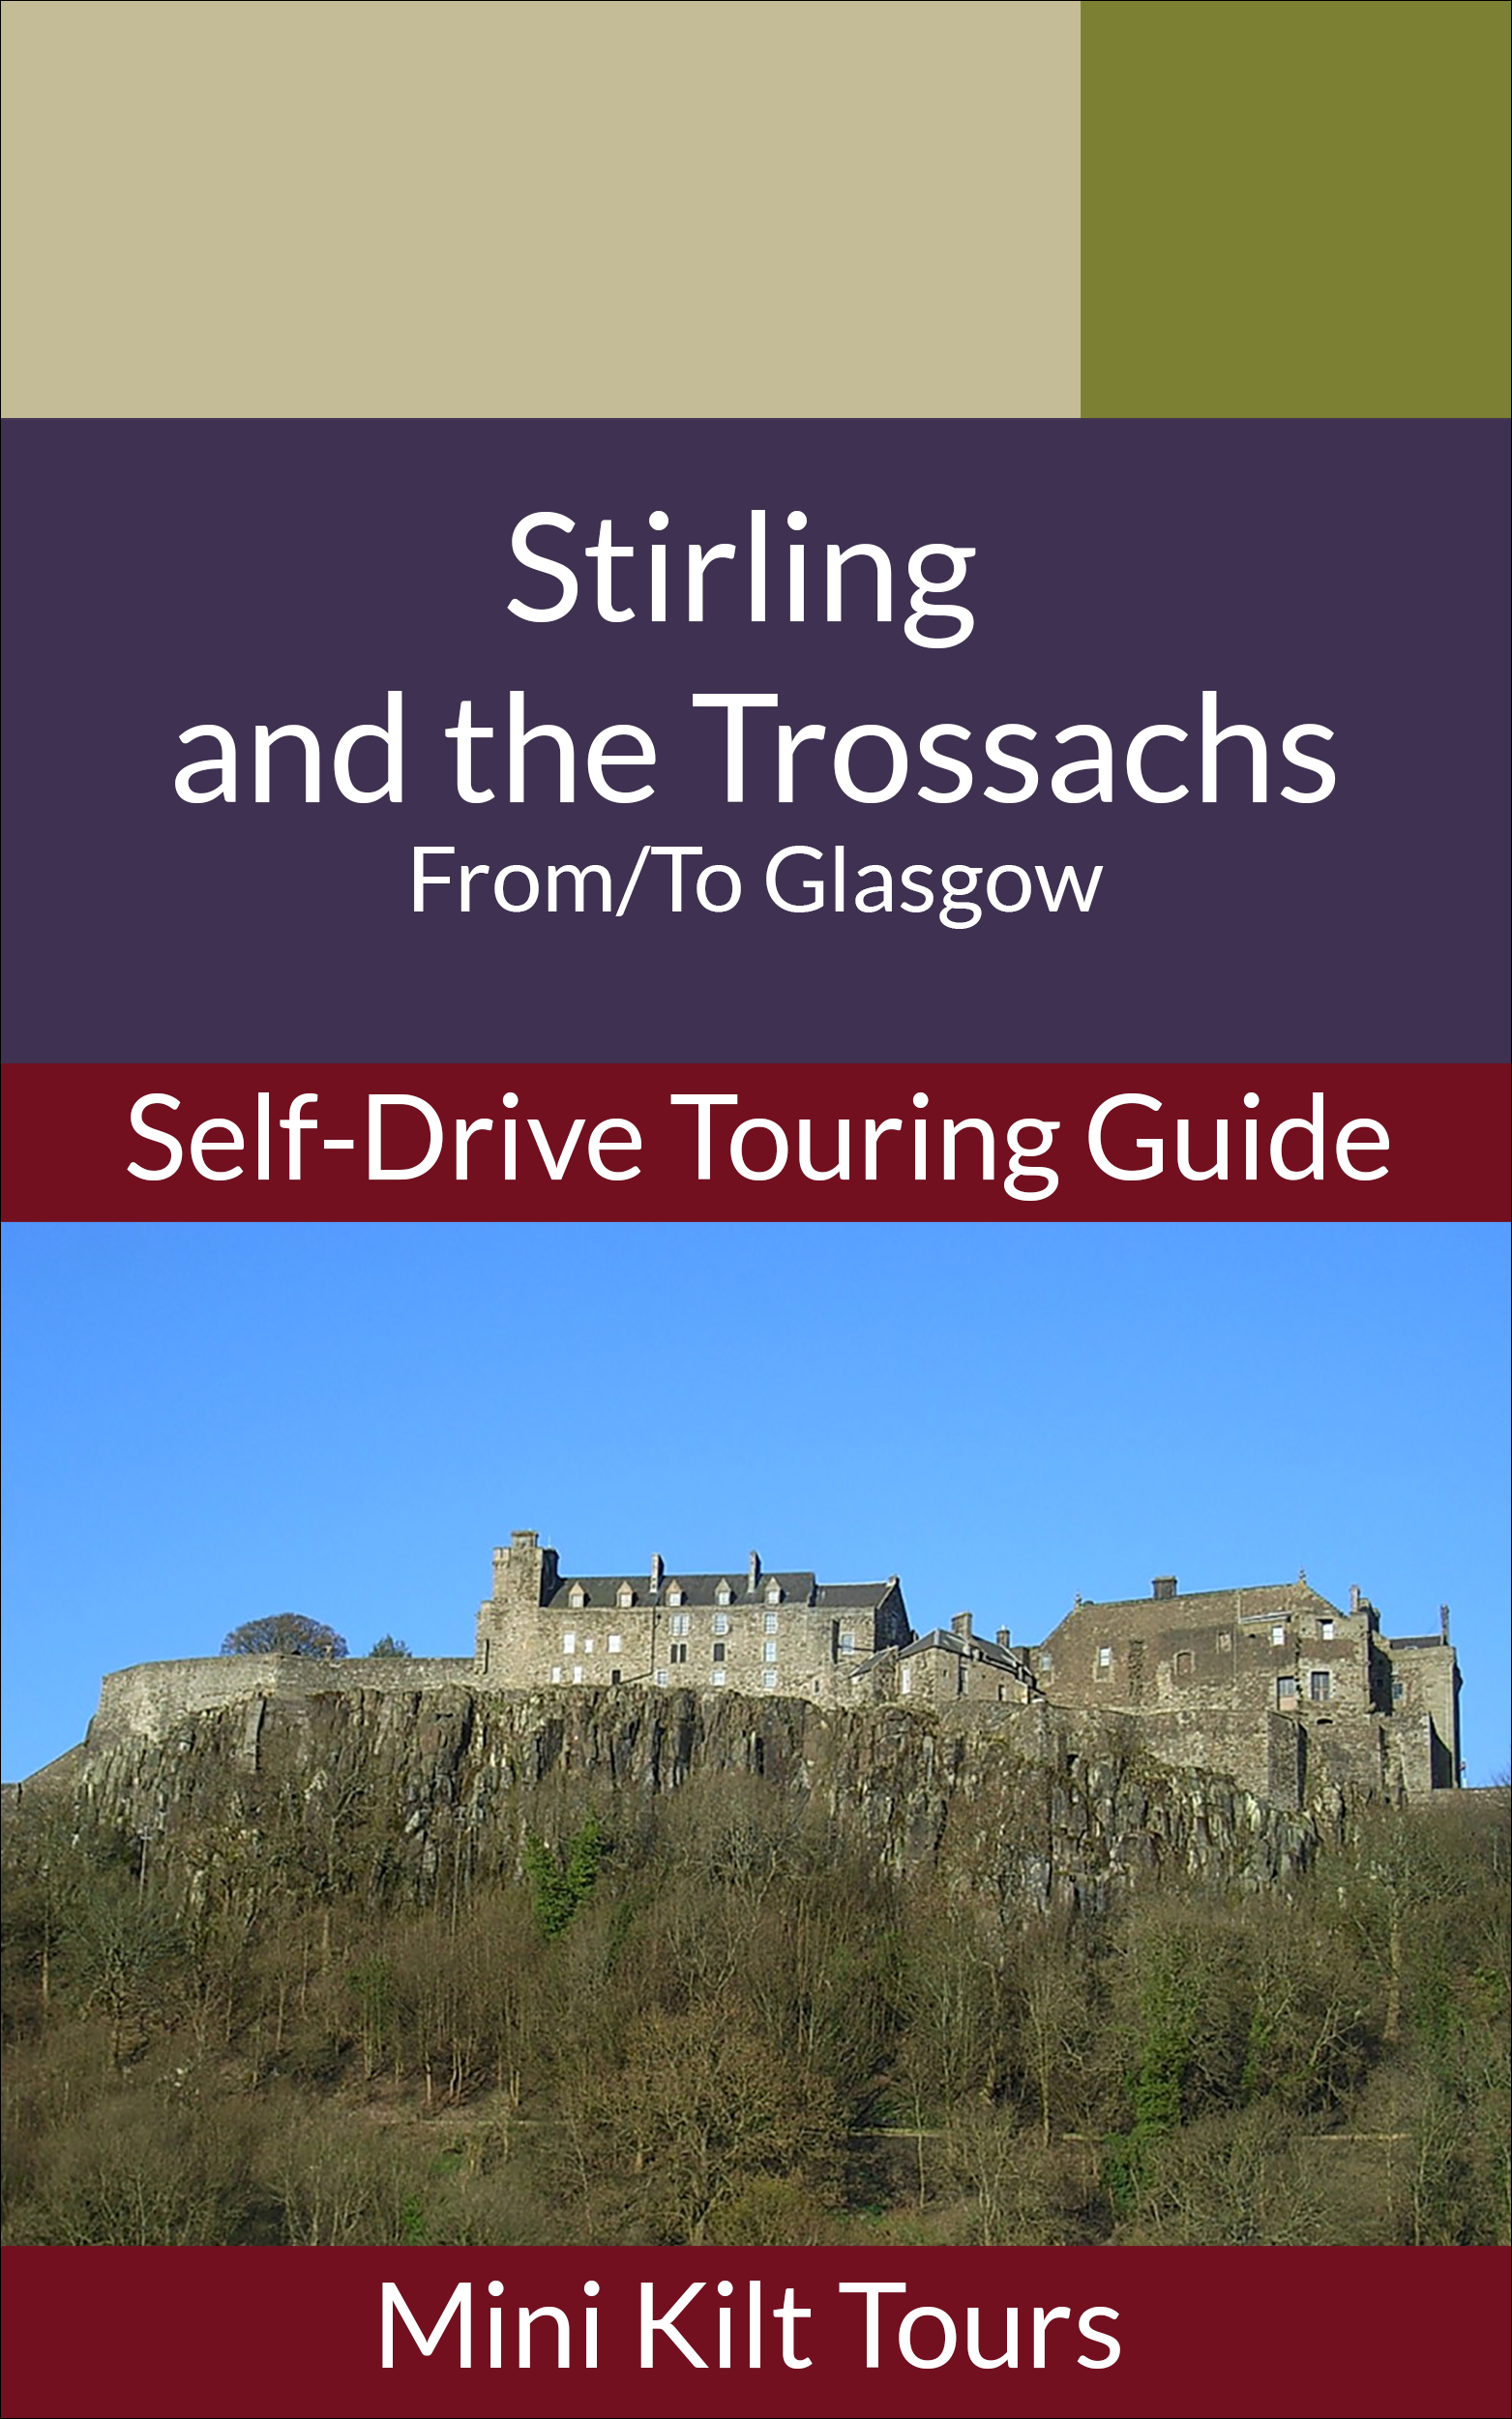 Cover of self-drive ebook for Stirling and the Trossachs from Glasgow